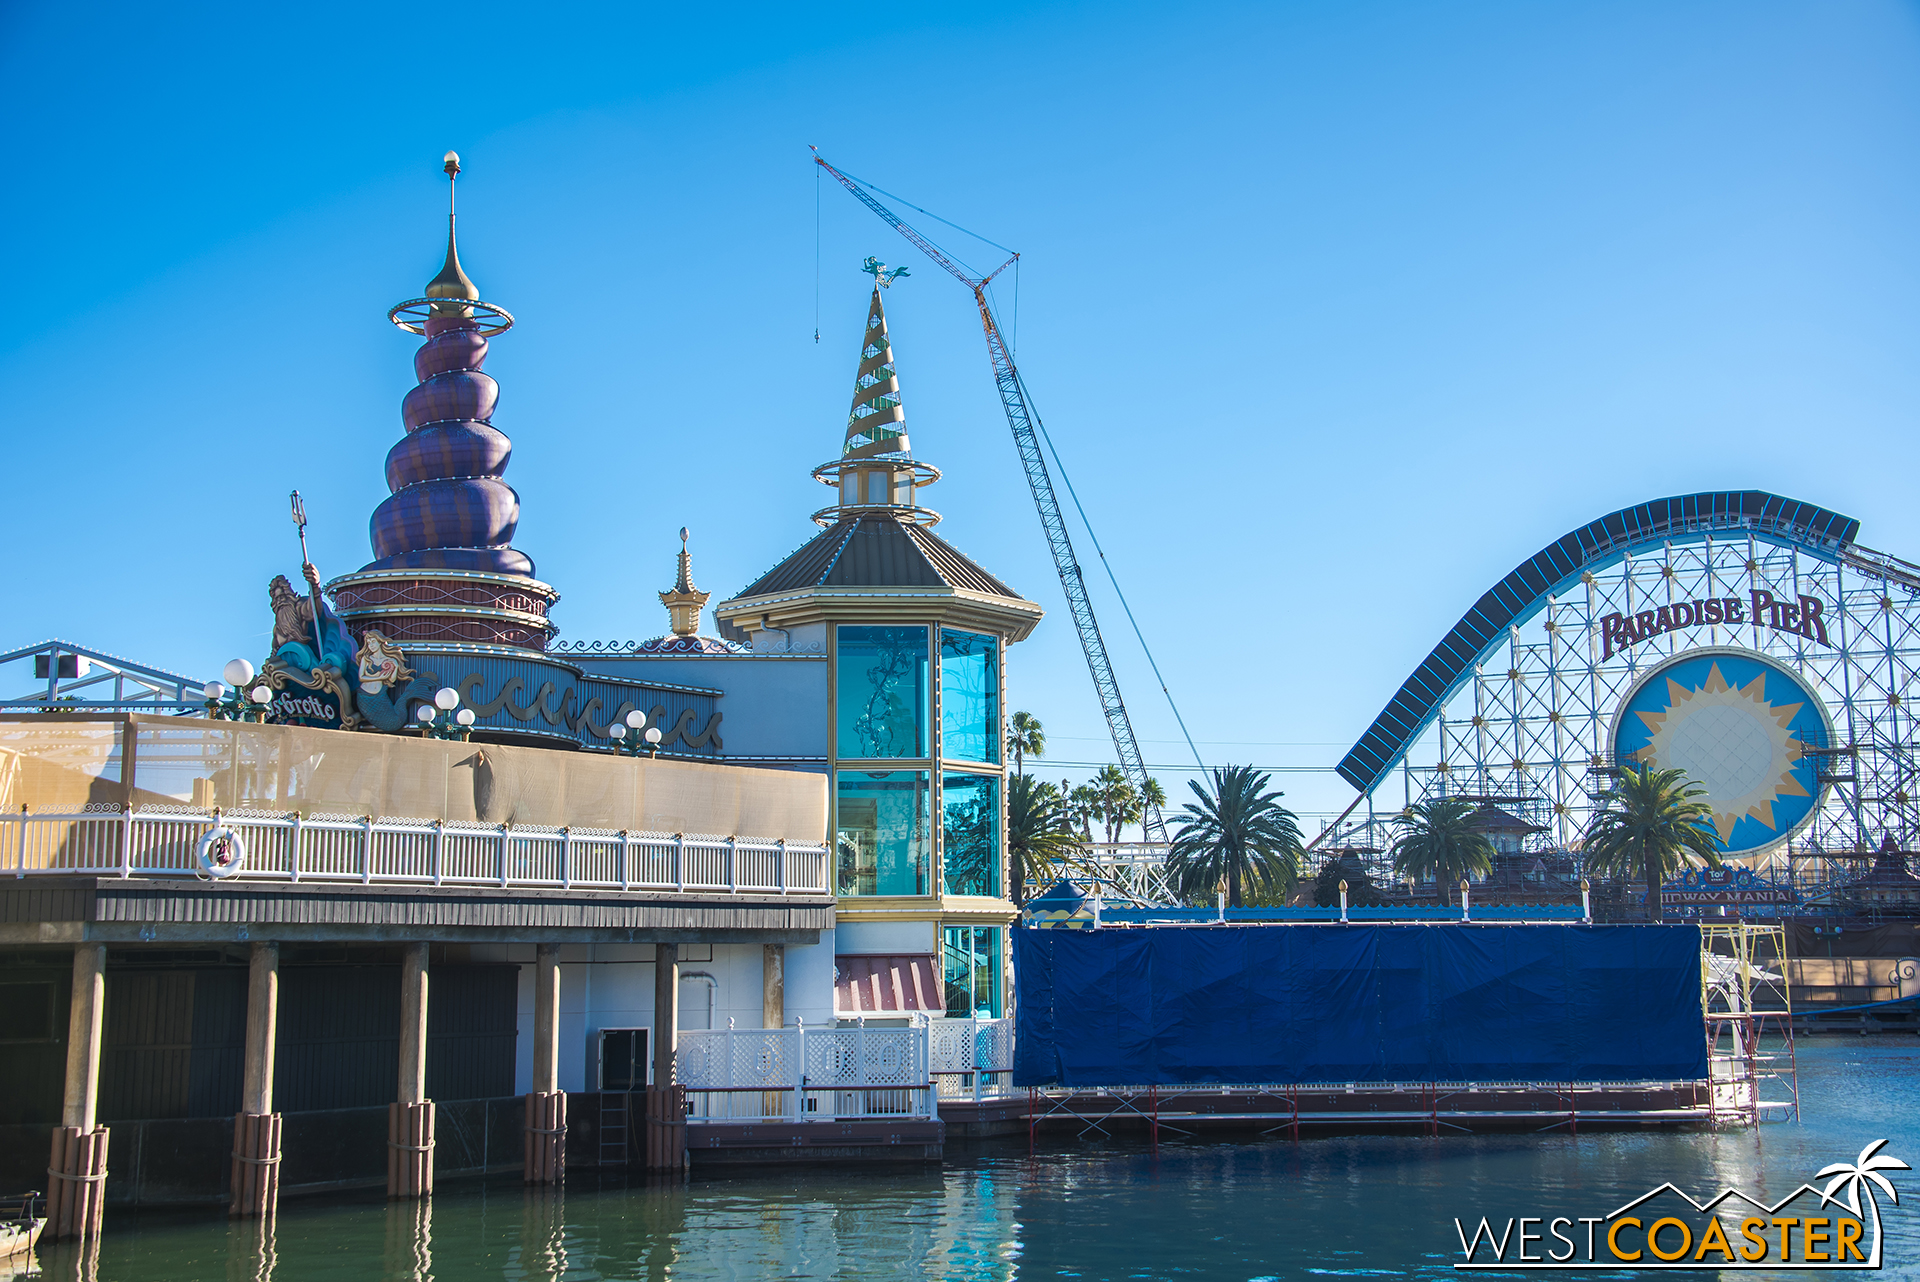 Per my understanding from cast members, this will return as a Pixar themed dining venue providing a more upscale sitdown restaurant downstairs while maintaining the bar amenities upstairs. Sort of like Carthay Circle Lounge/Restaurant, but inverted.